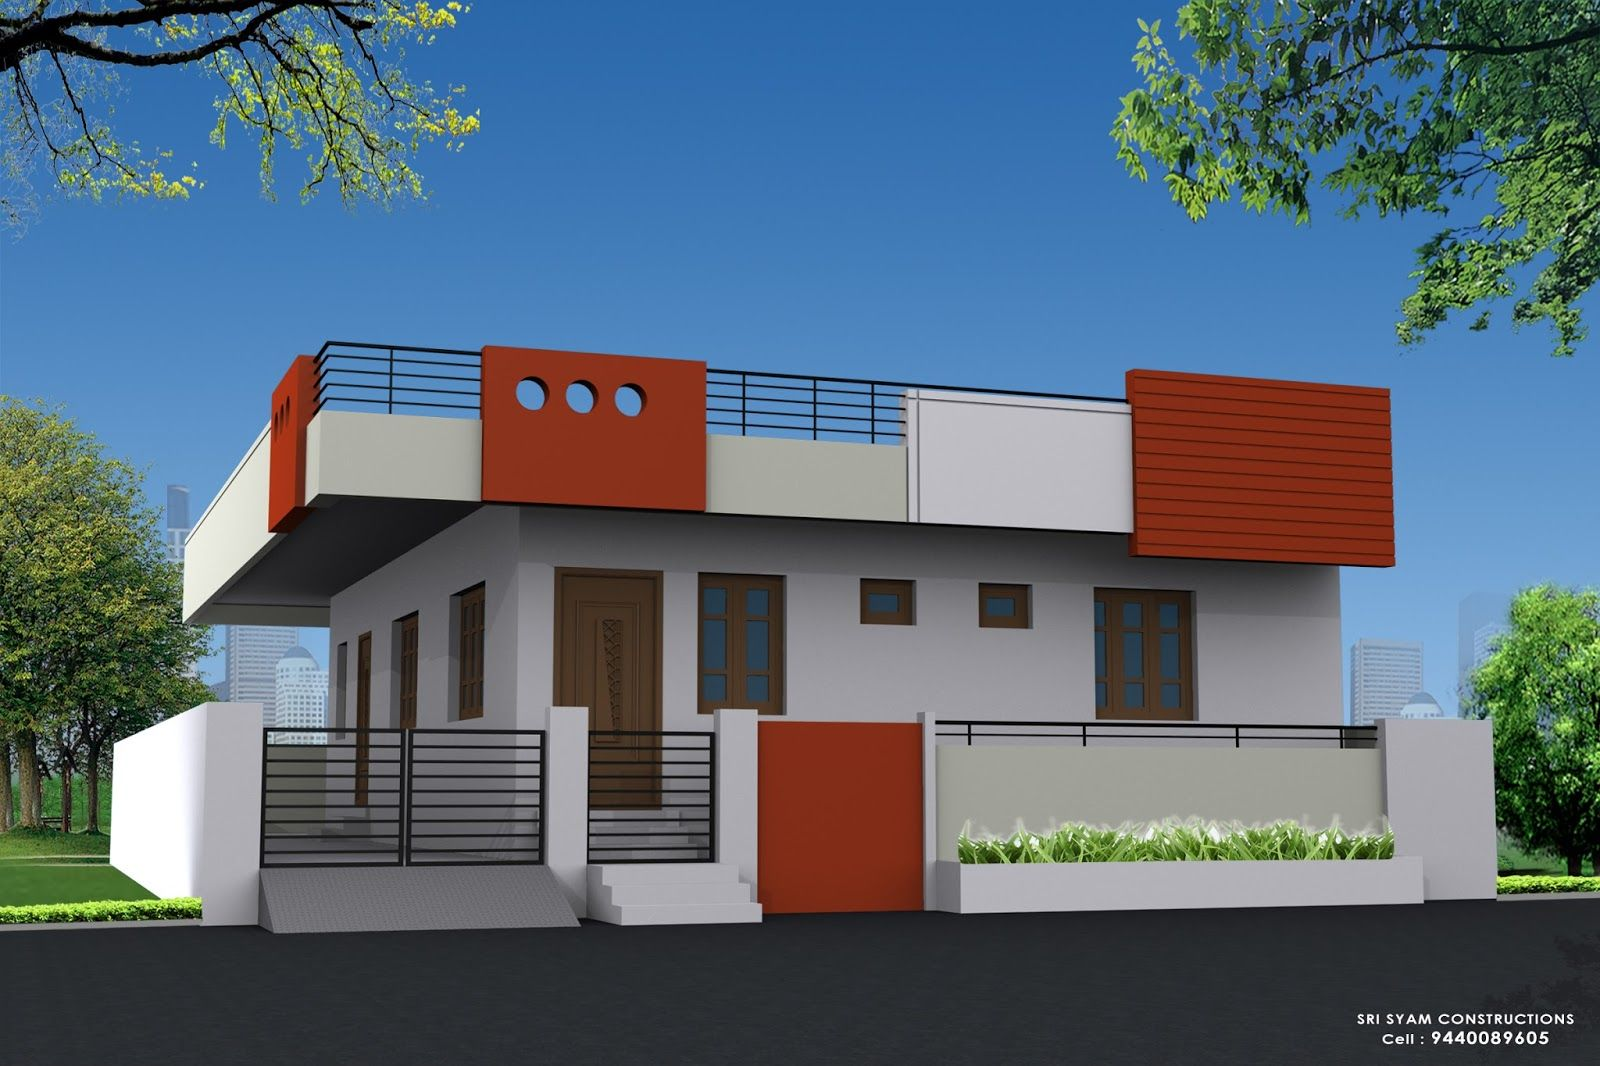 Singlefloorelevations 287 29 Jpg 1600 1066 Small House Elevation Design Single Floor House Design Small House Elevation